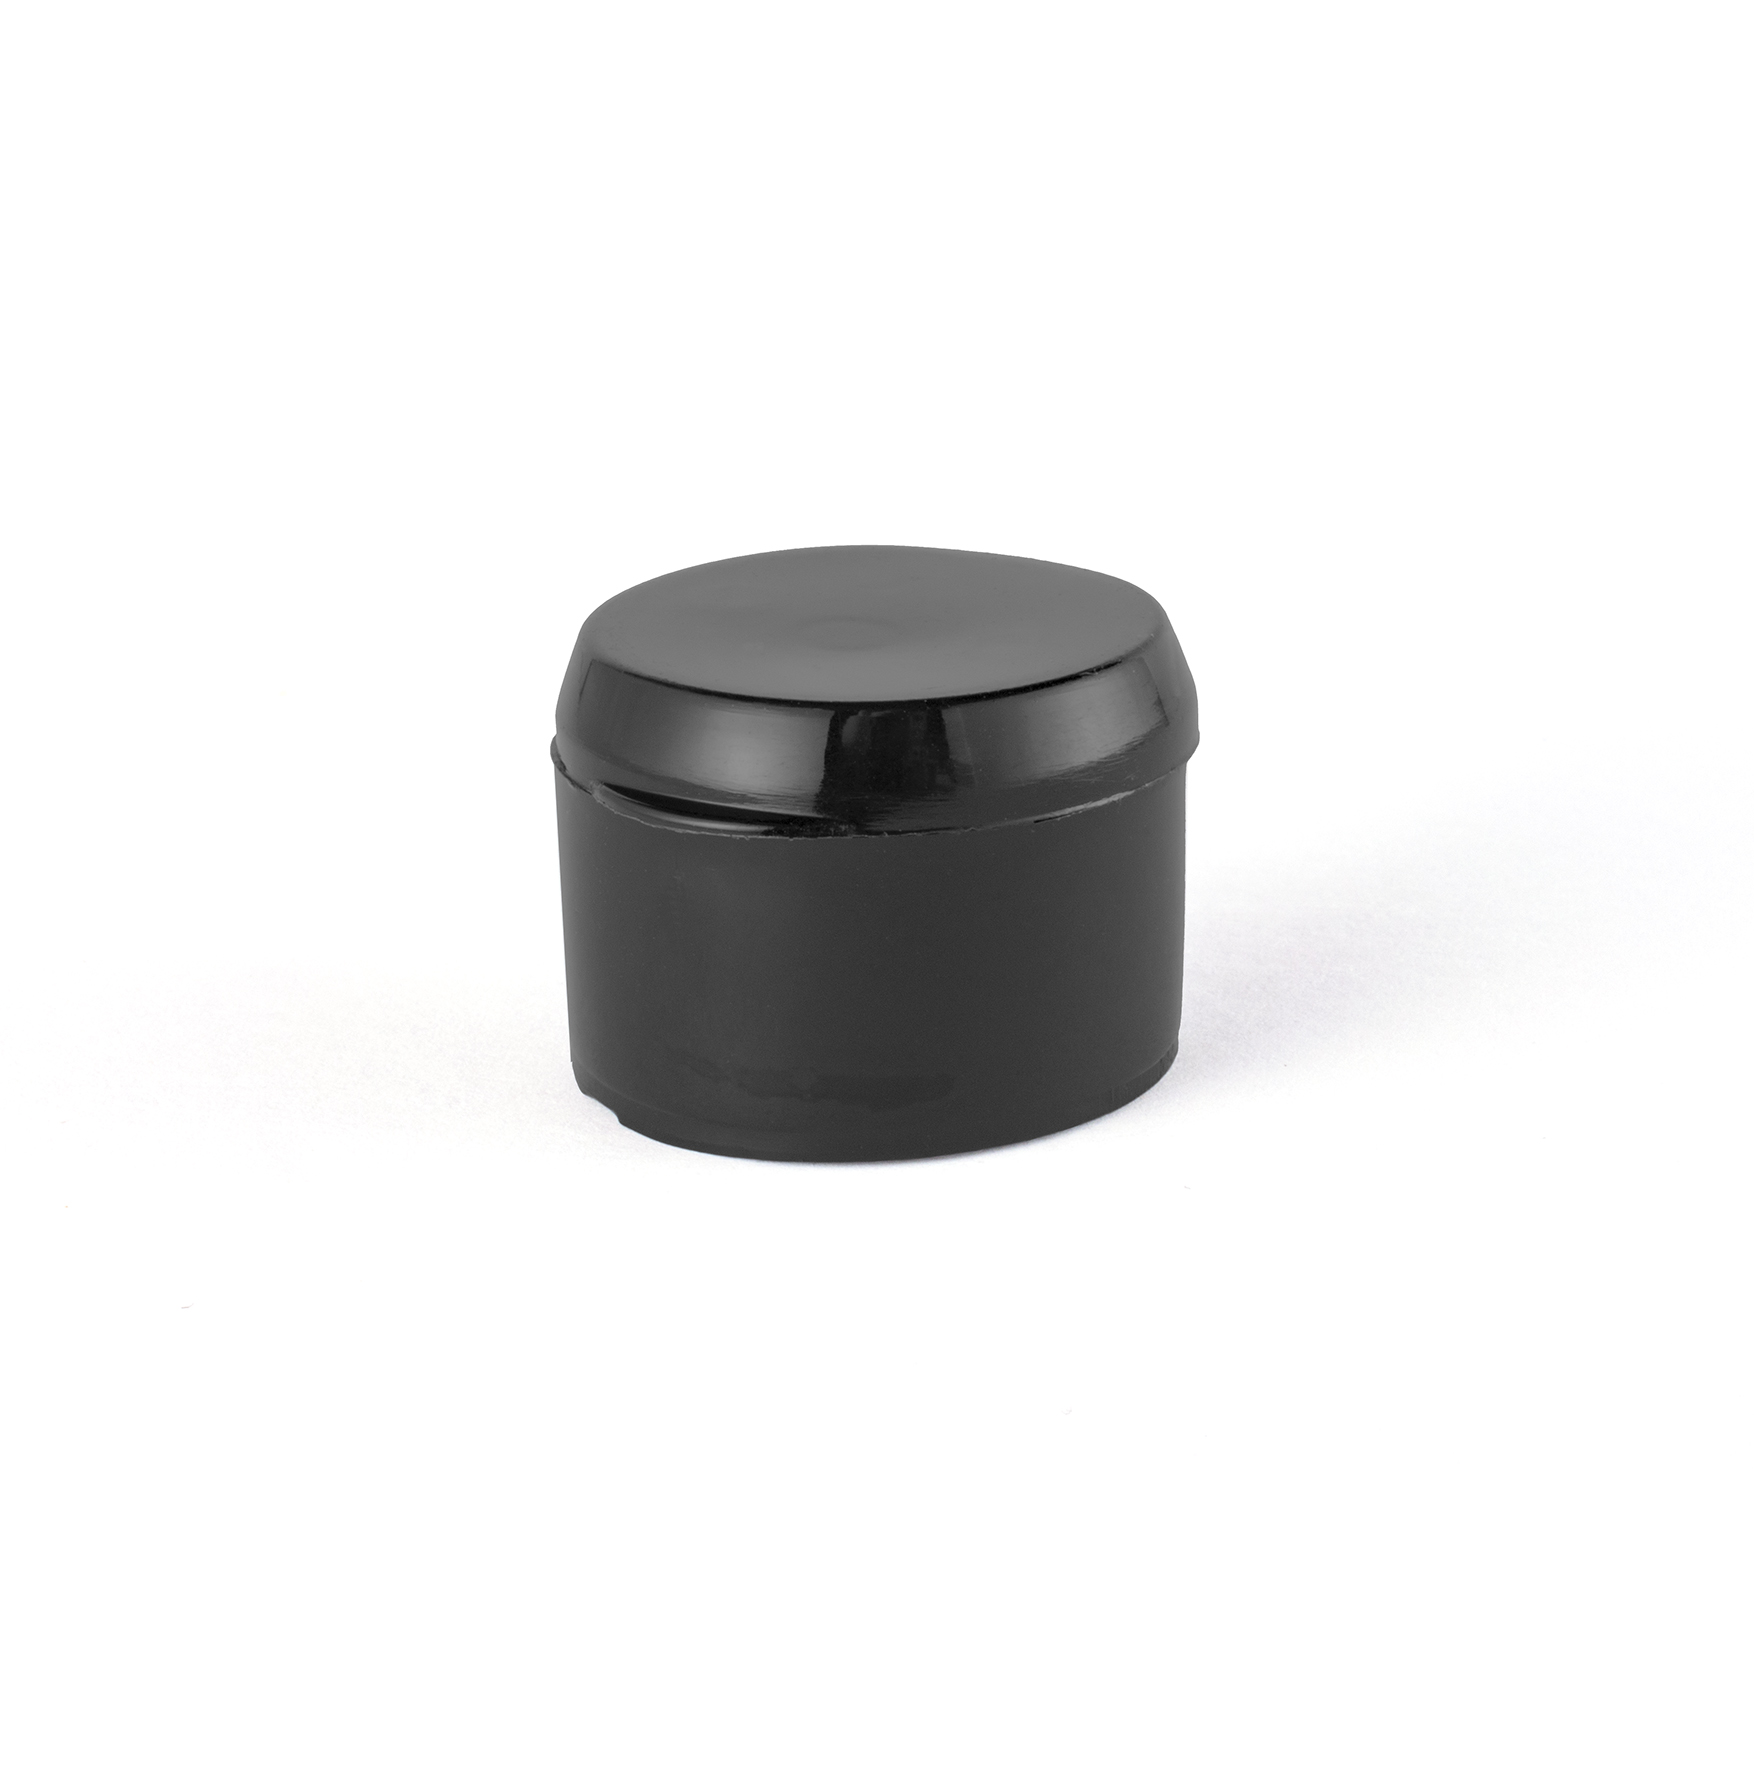 TAPA PLASTICA 24 mm FLIP TOP NEGRA